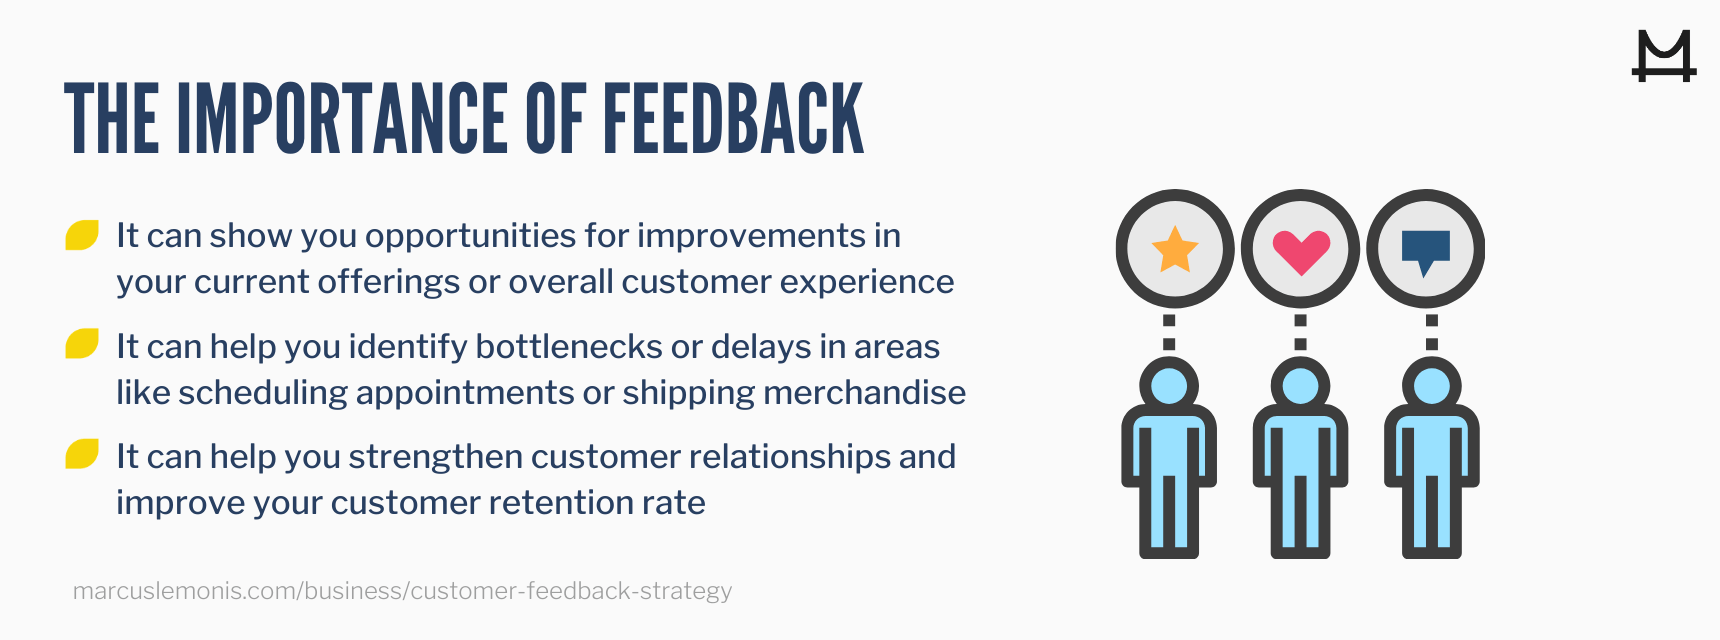 The importance of customer feedback for businesses